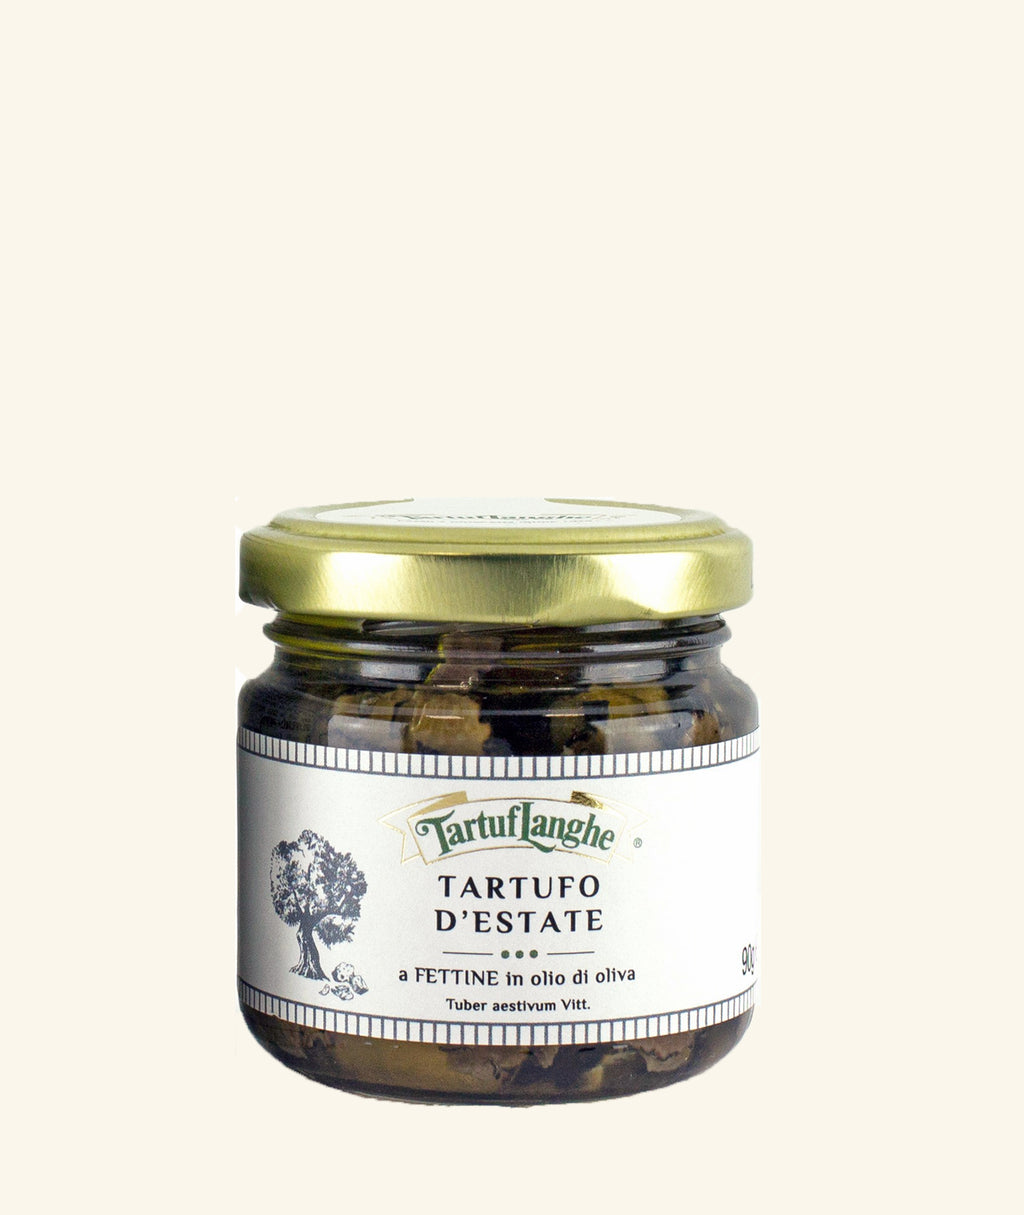 Summer Truffle Slices in Olive Oil